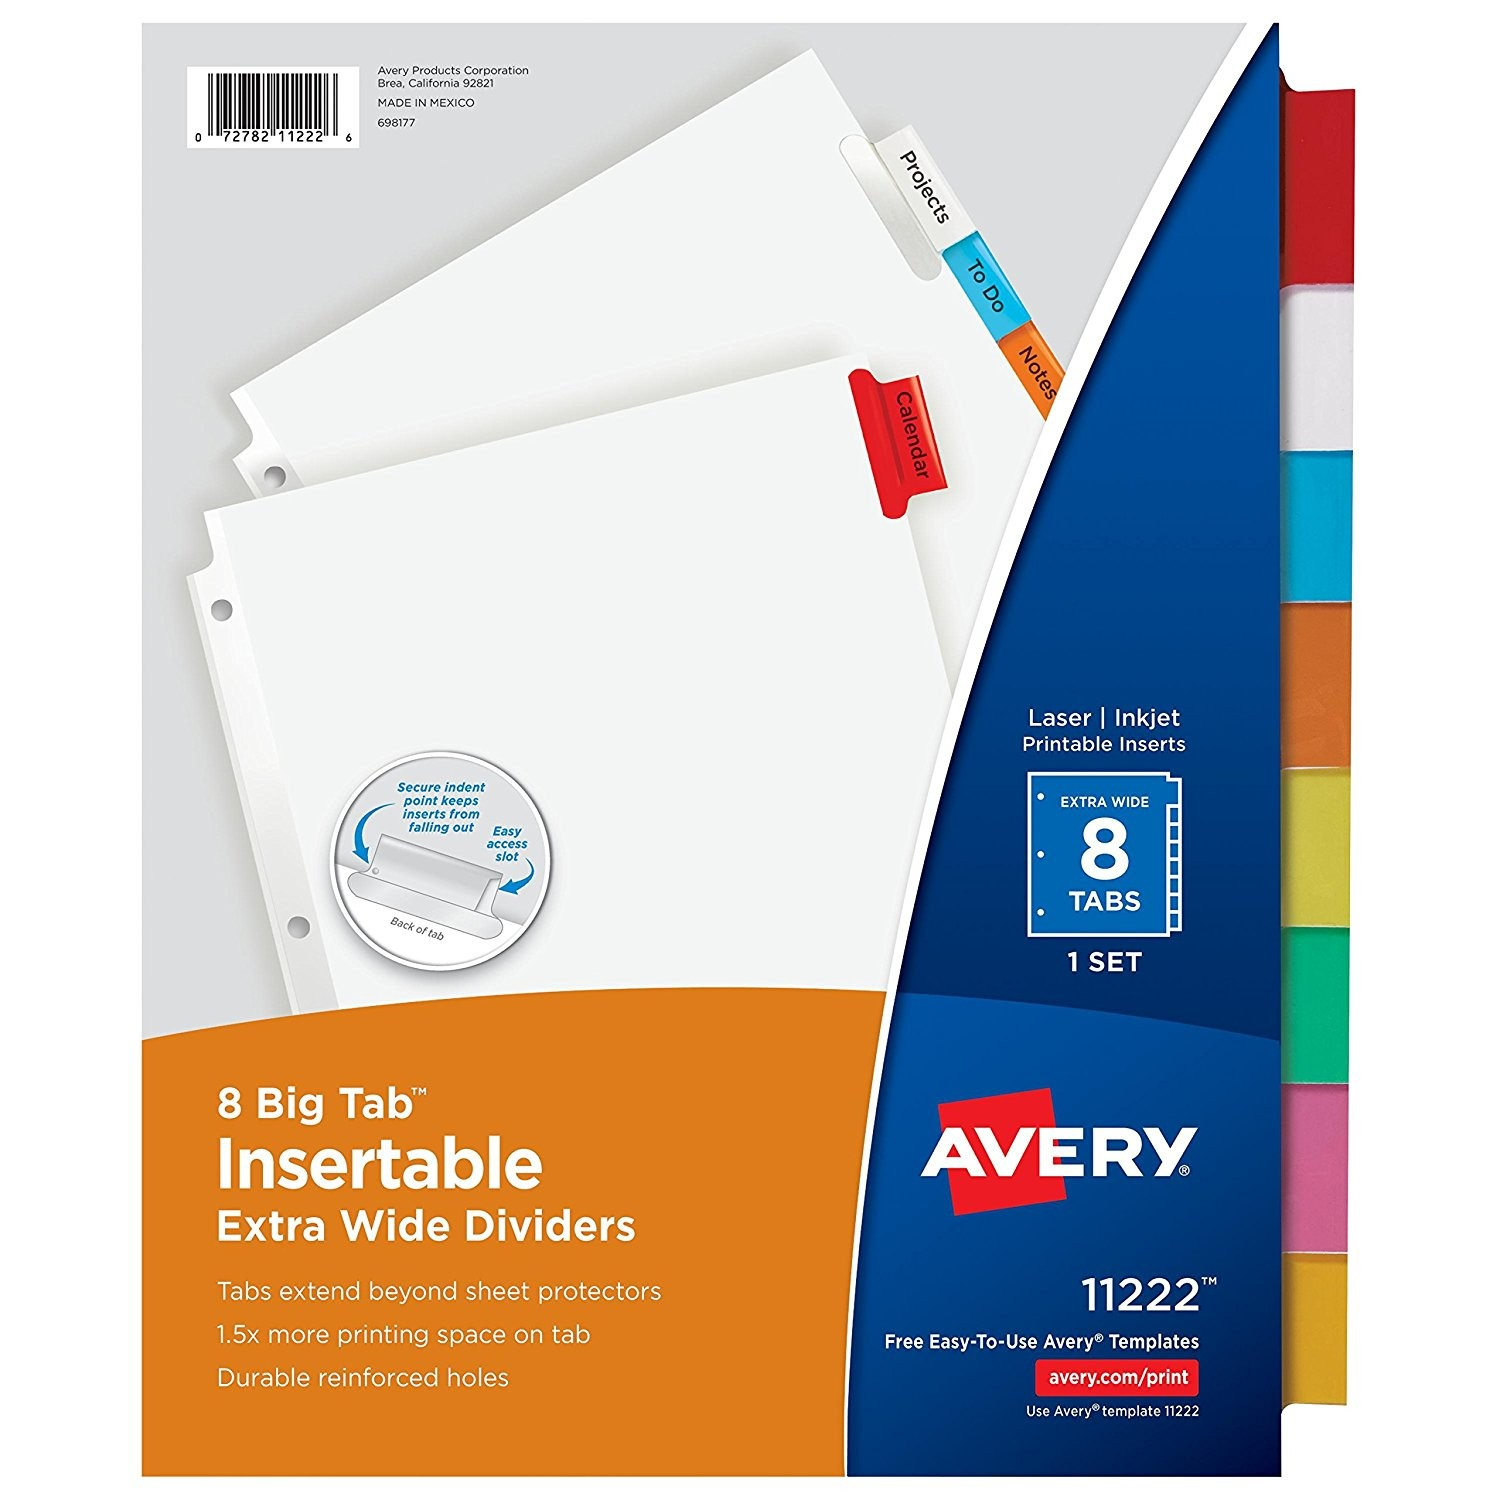 Avery Big Tab Template New Amazon Com Avery Big Tab Insertable Extra Wide Dividers 8